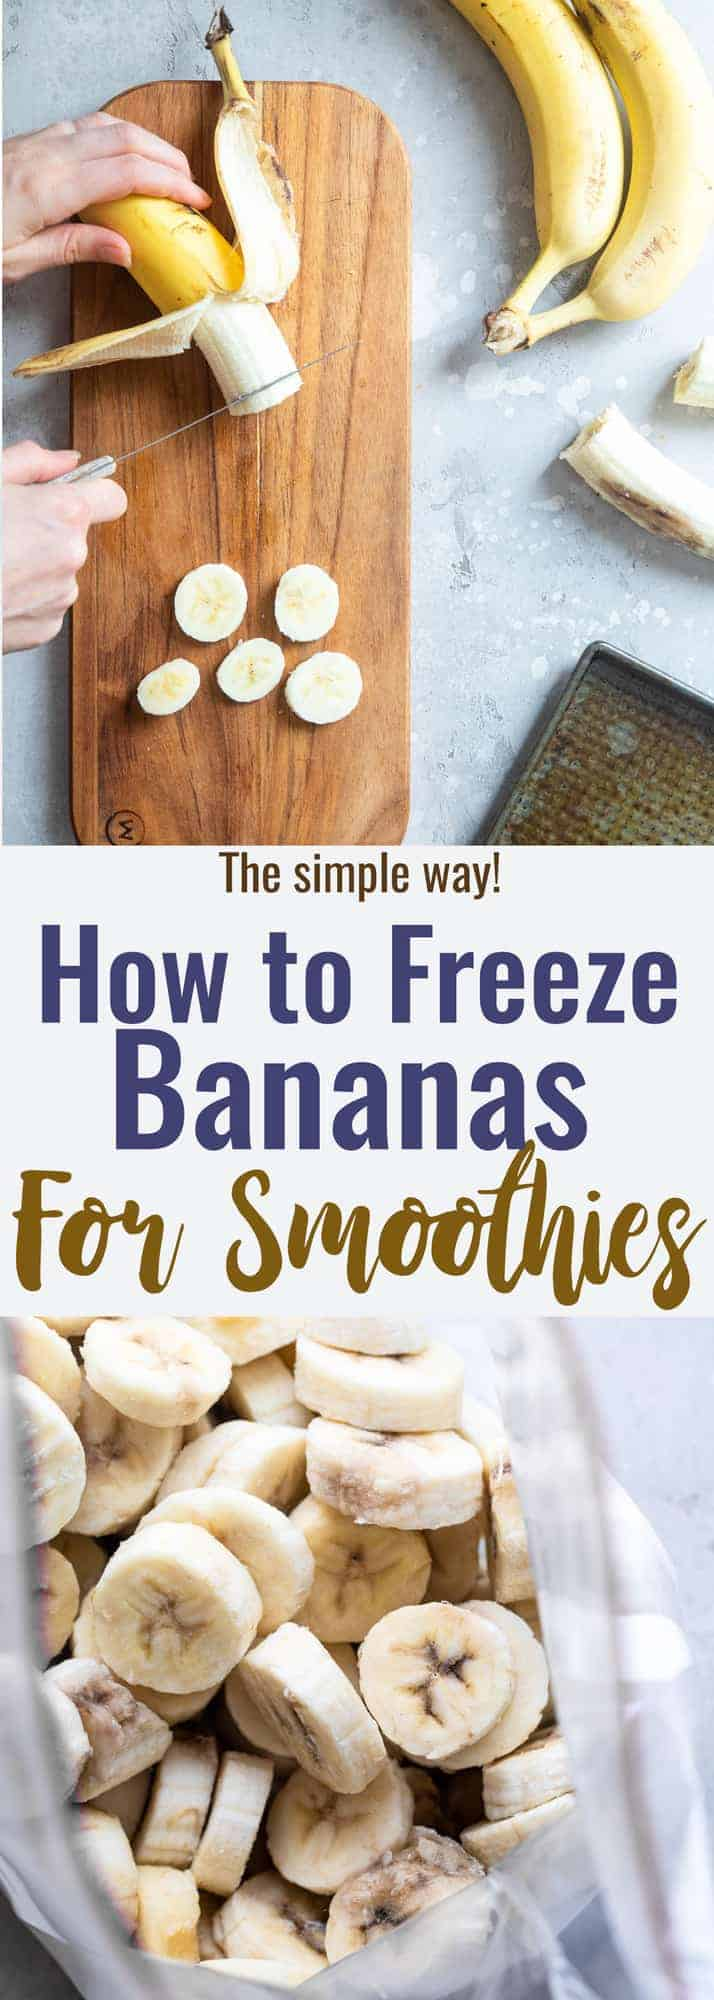 How to Freeze Bananas Picture